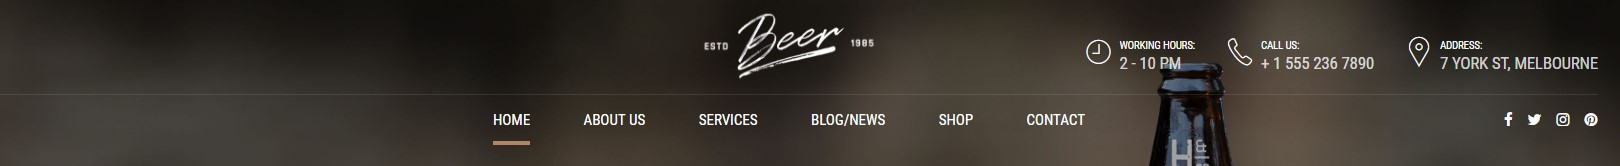 http://documentation.bold-themes.com/craft-beer/wp-content/uploads/sites/17/2017/06/menu-below-center.jpg